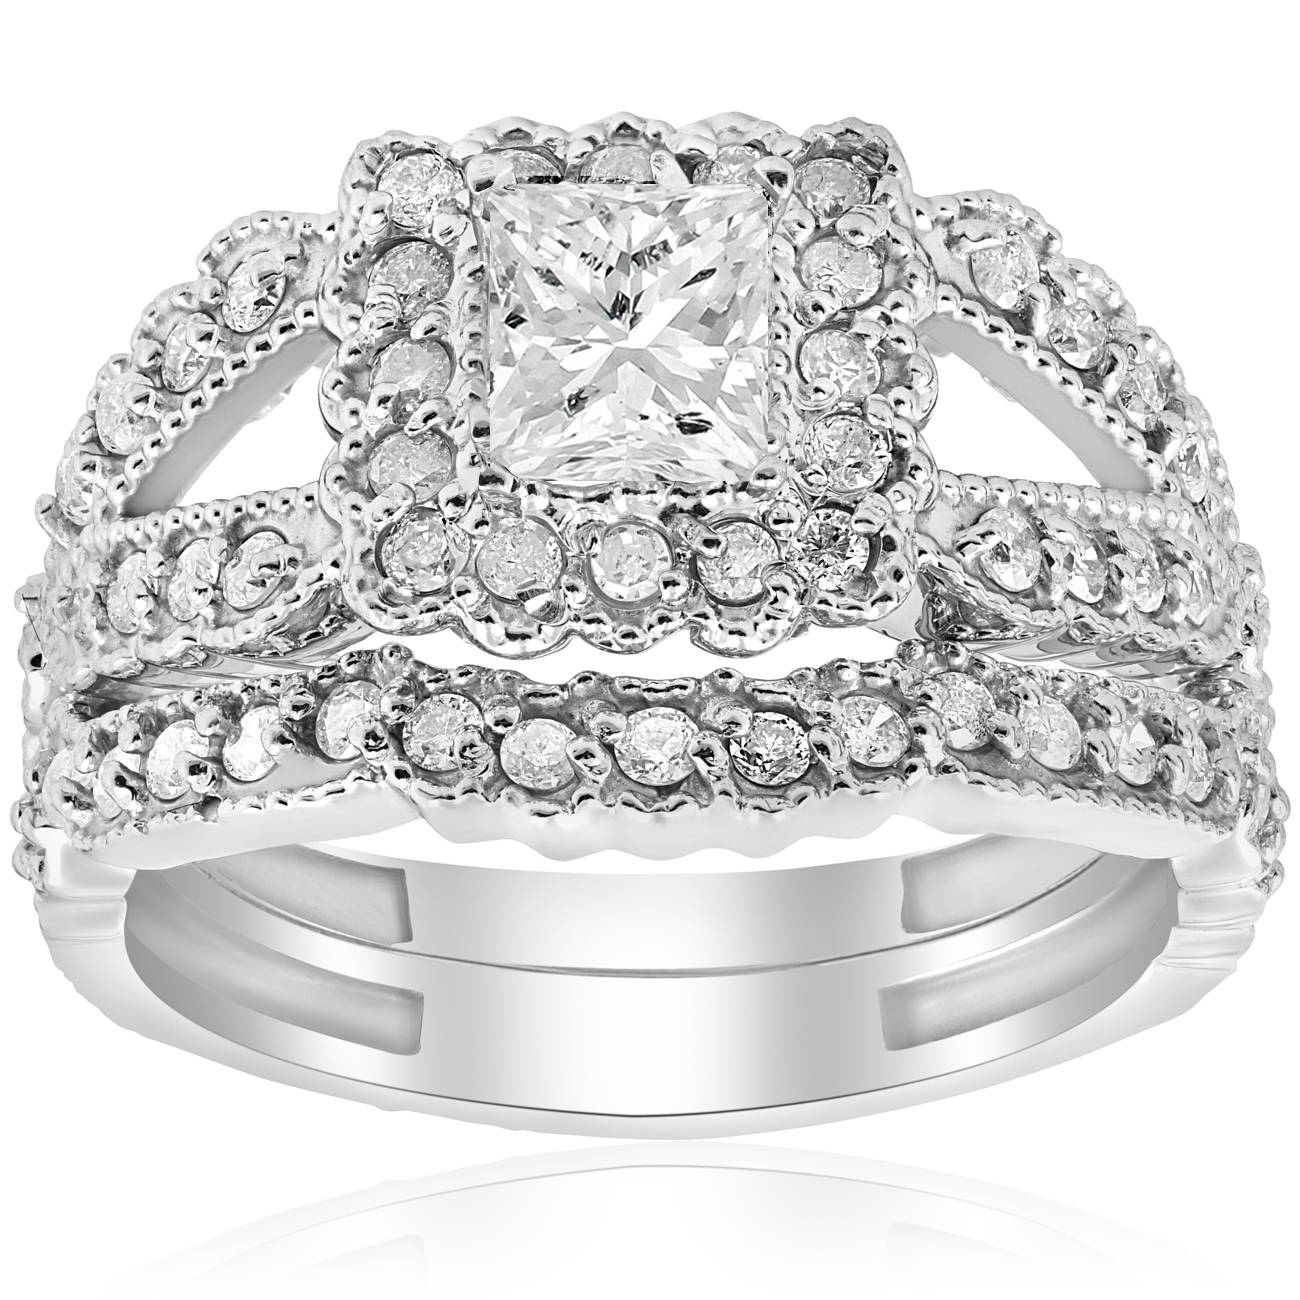 1 1/10ct Princess Cut Halo Diamond Engagement Ring 14K White Gold Vintage Antique - image 4 of 4